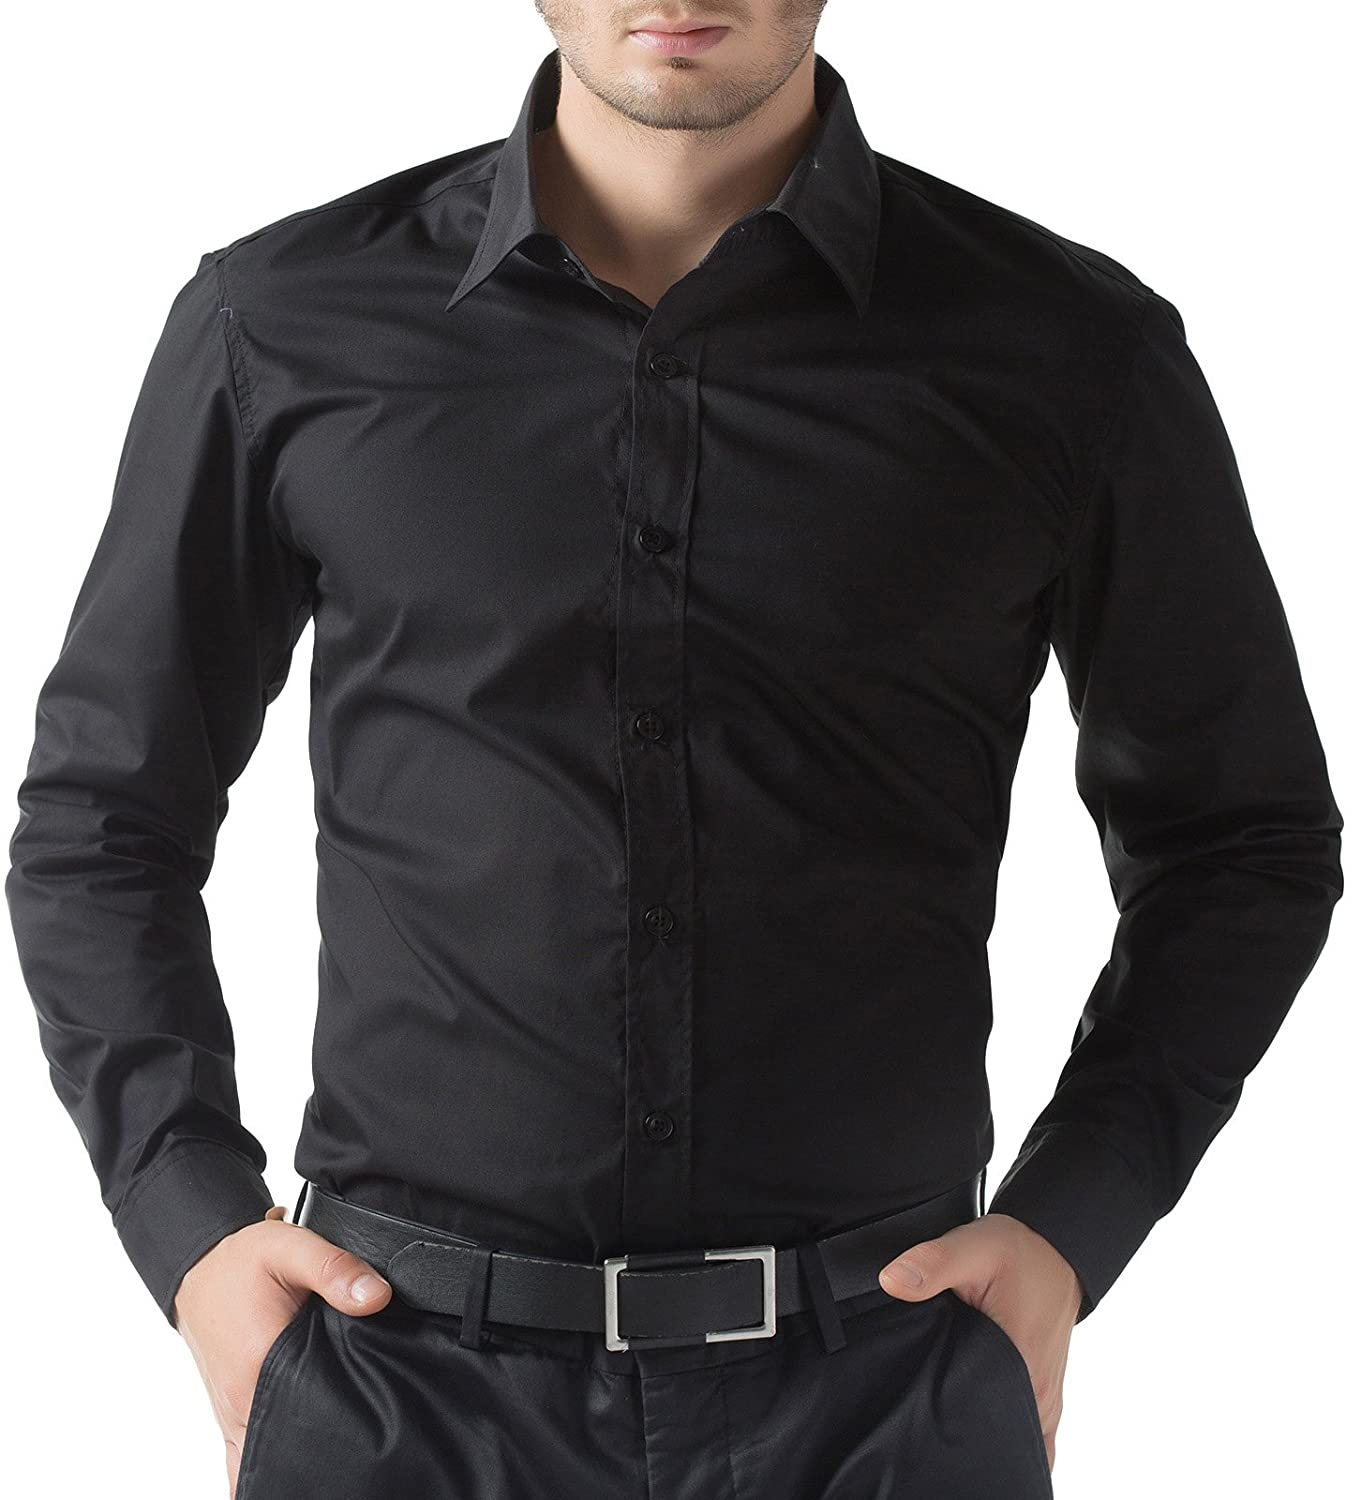 Black t shirt full sleeve with collar - Paul Jones Men S Business Casual Long Sleeves Dress Shirts At Amazon Men S Clothing Store